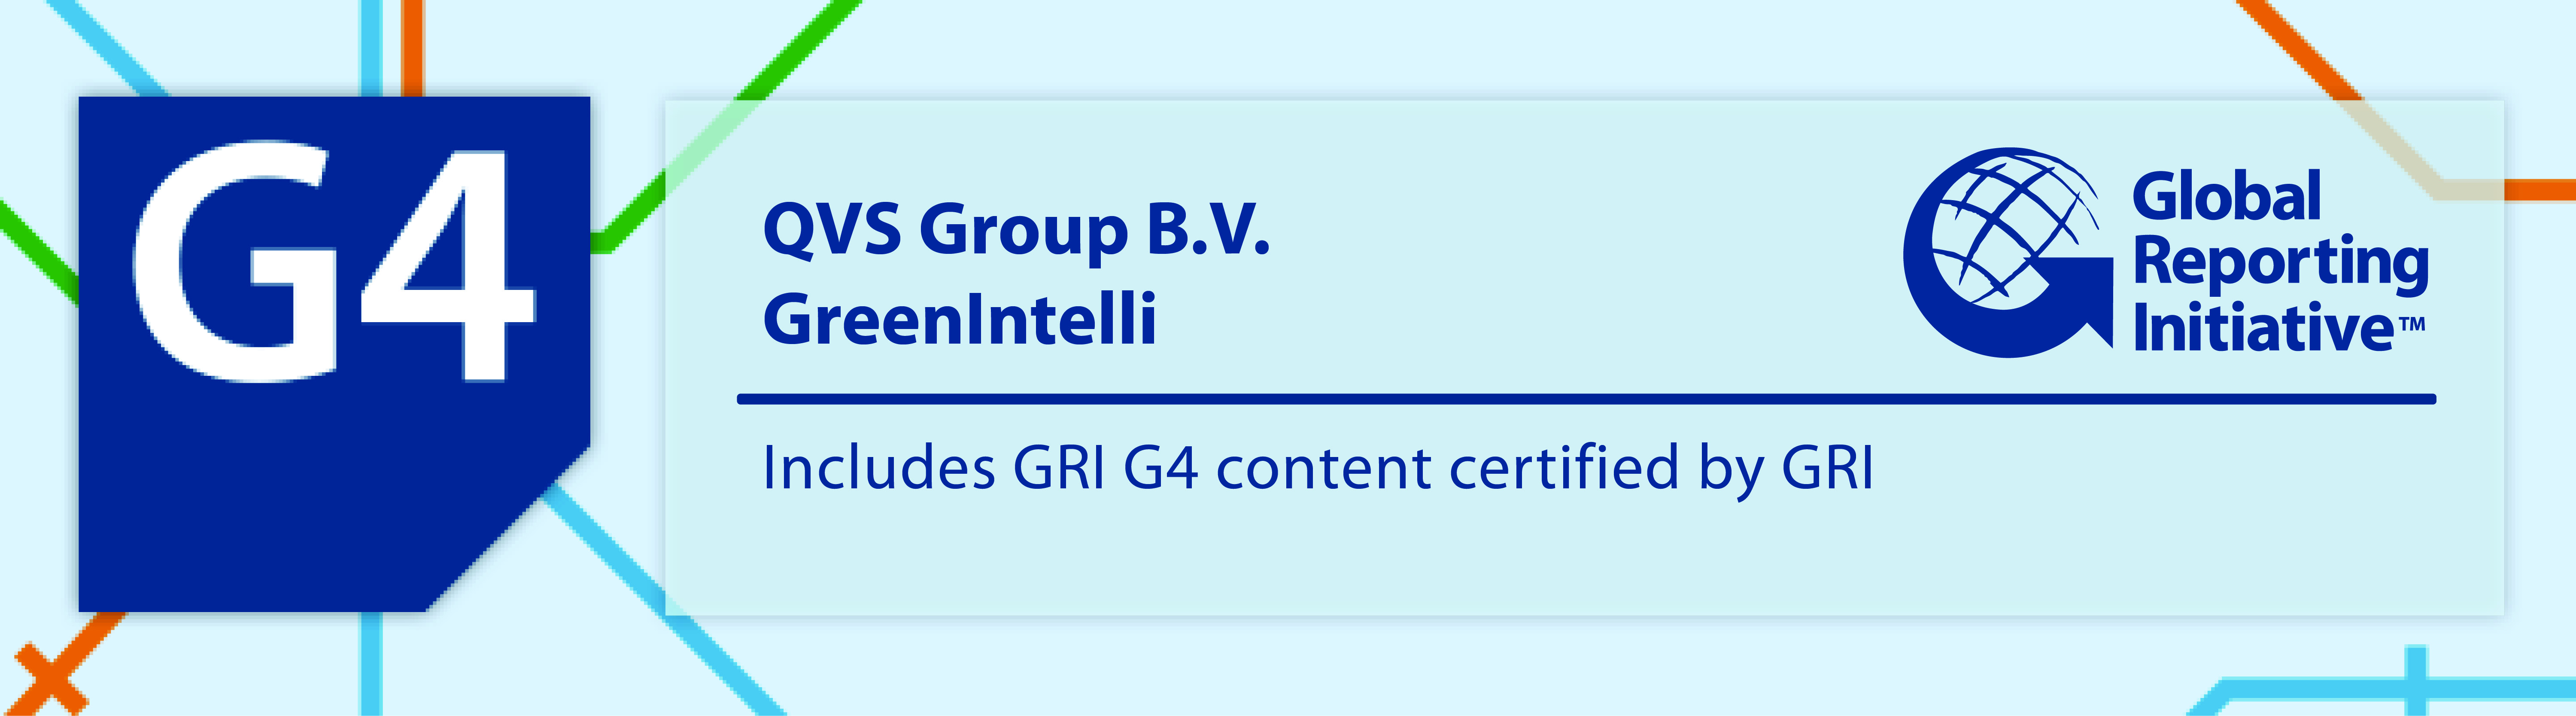 QVS Consulting » GreenIntelli certified for GRI G4 Sustainability ...